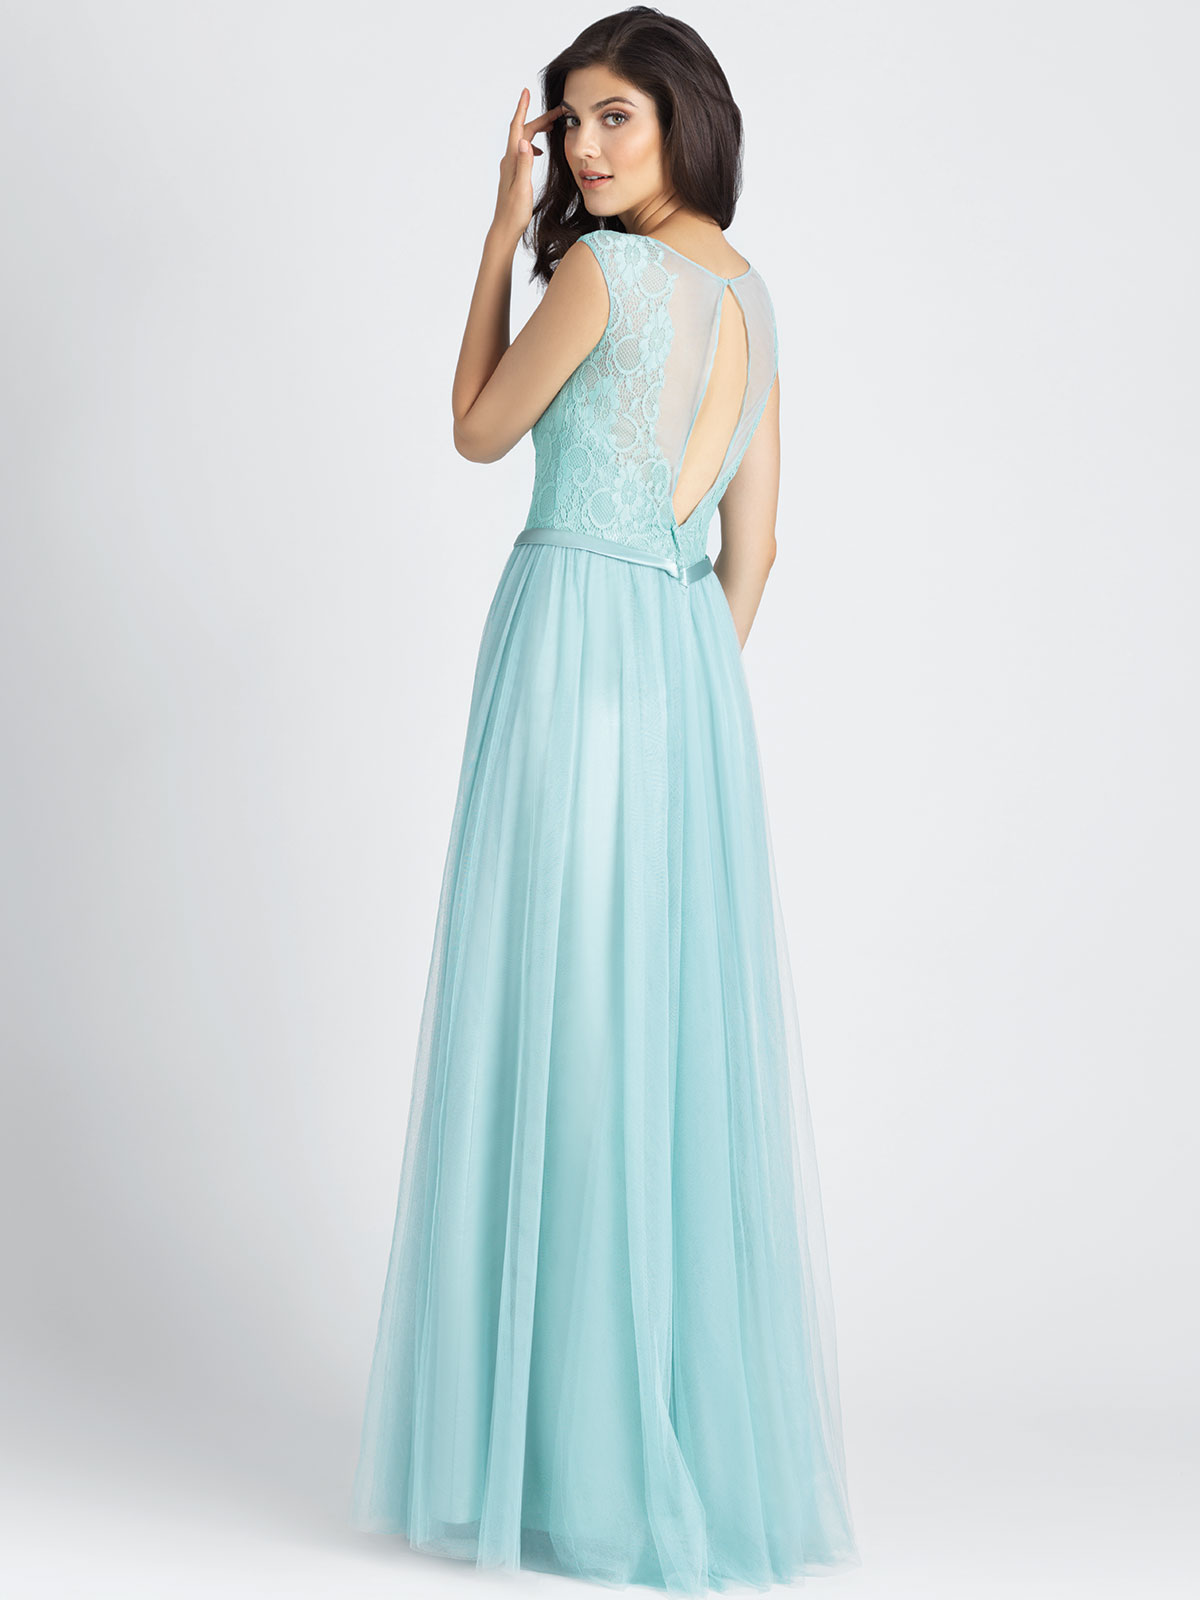 Allure 1511 tulle a line bridesmaid dressdimitradesigns tulle a line allure bridesmaid dress 1511 ombrellifo Choice Image